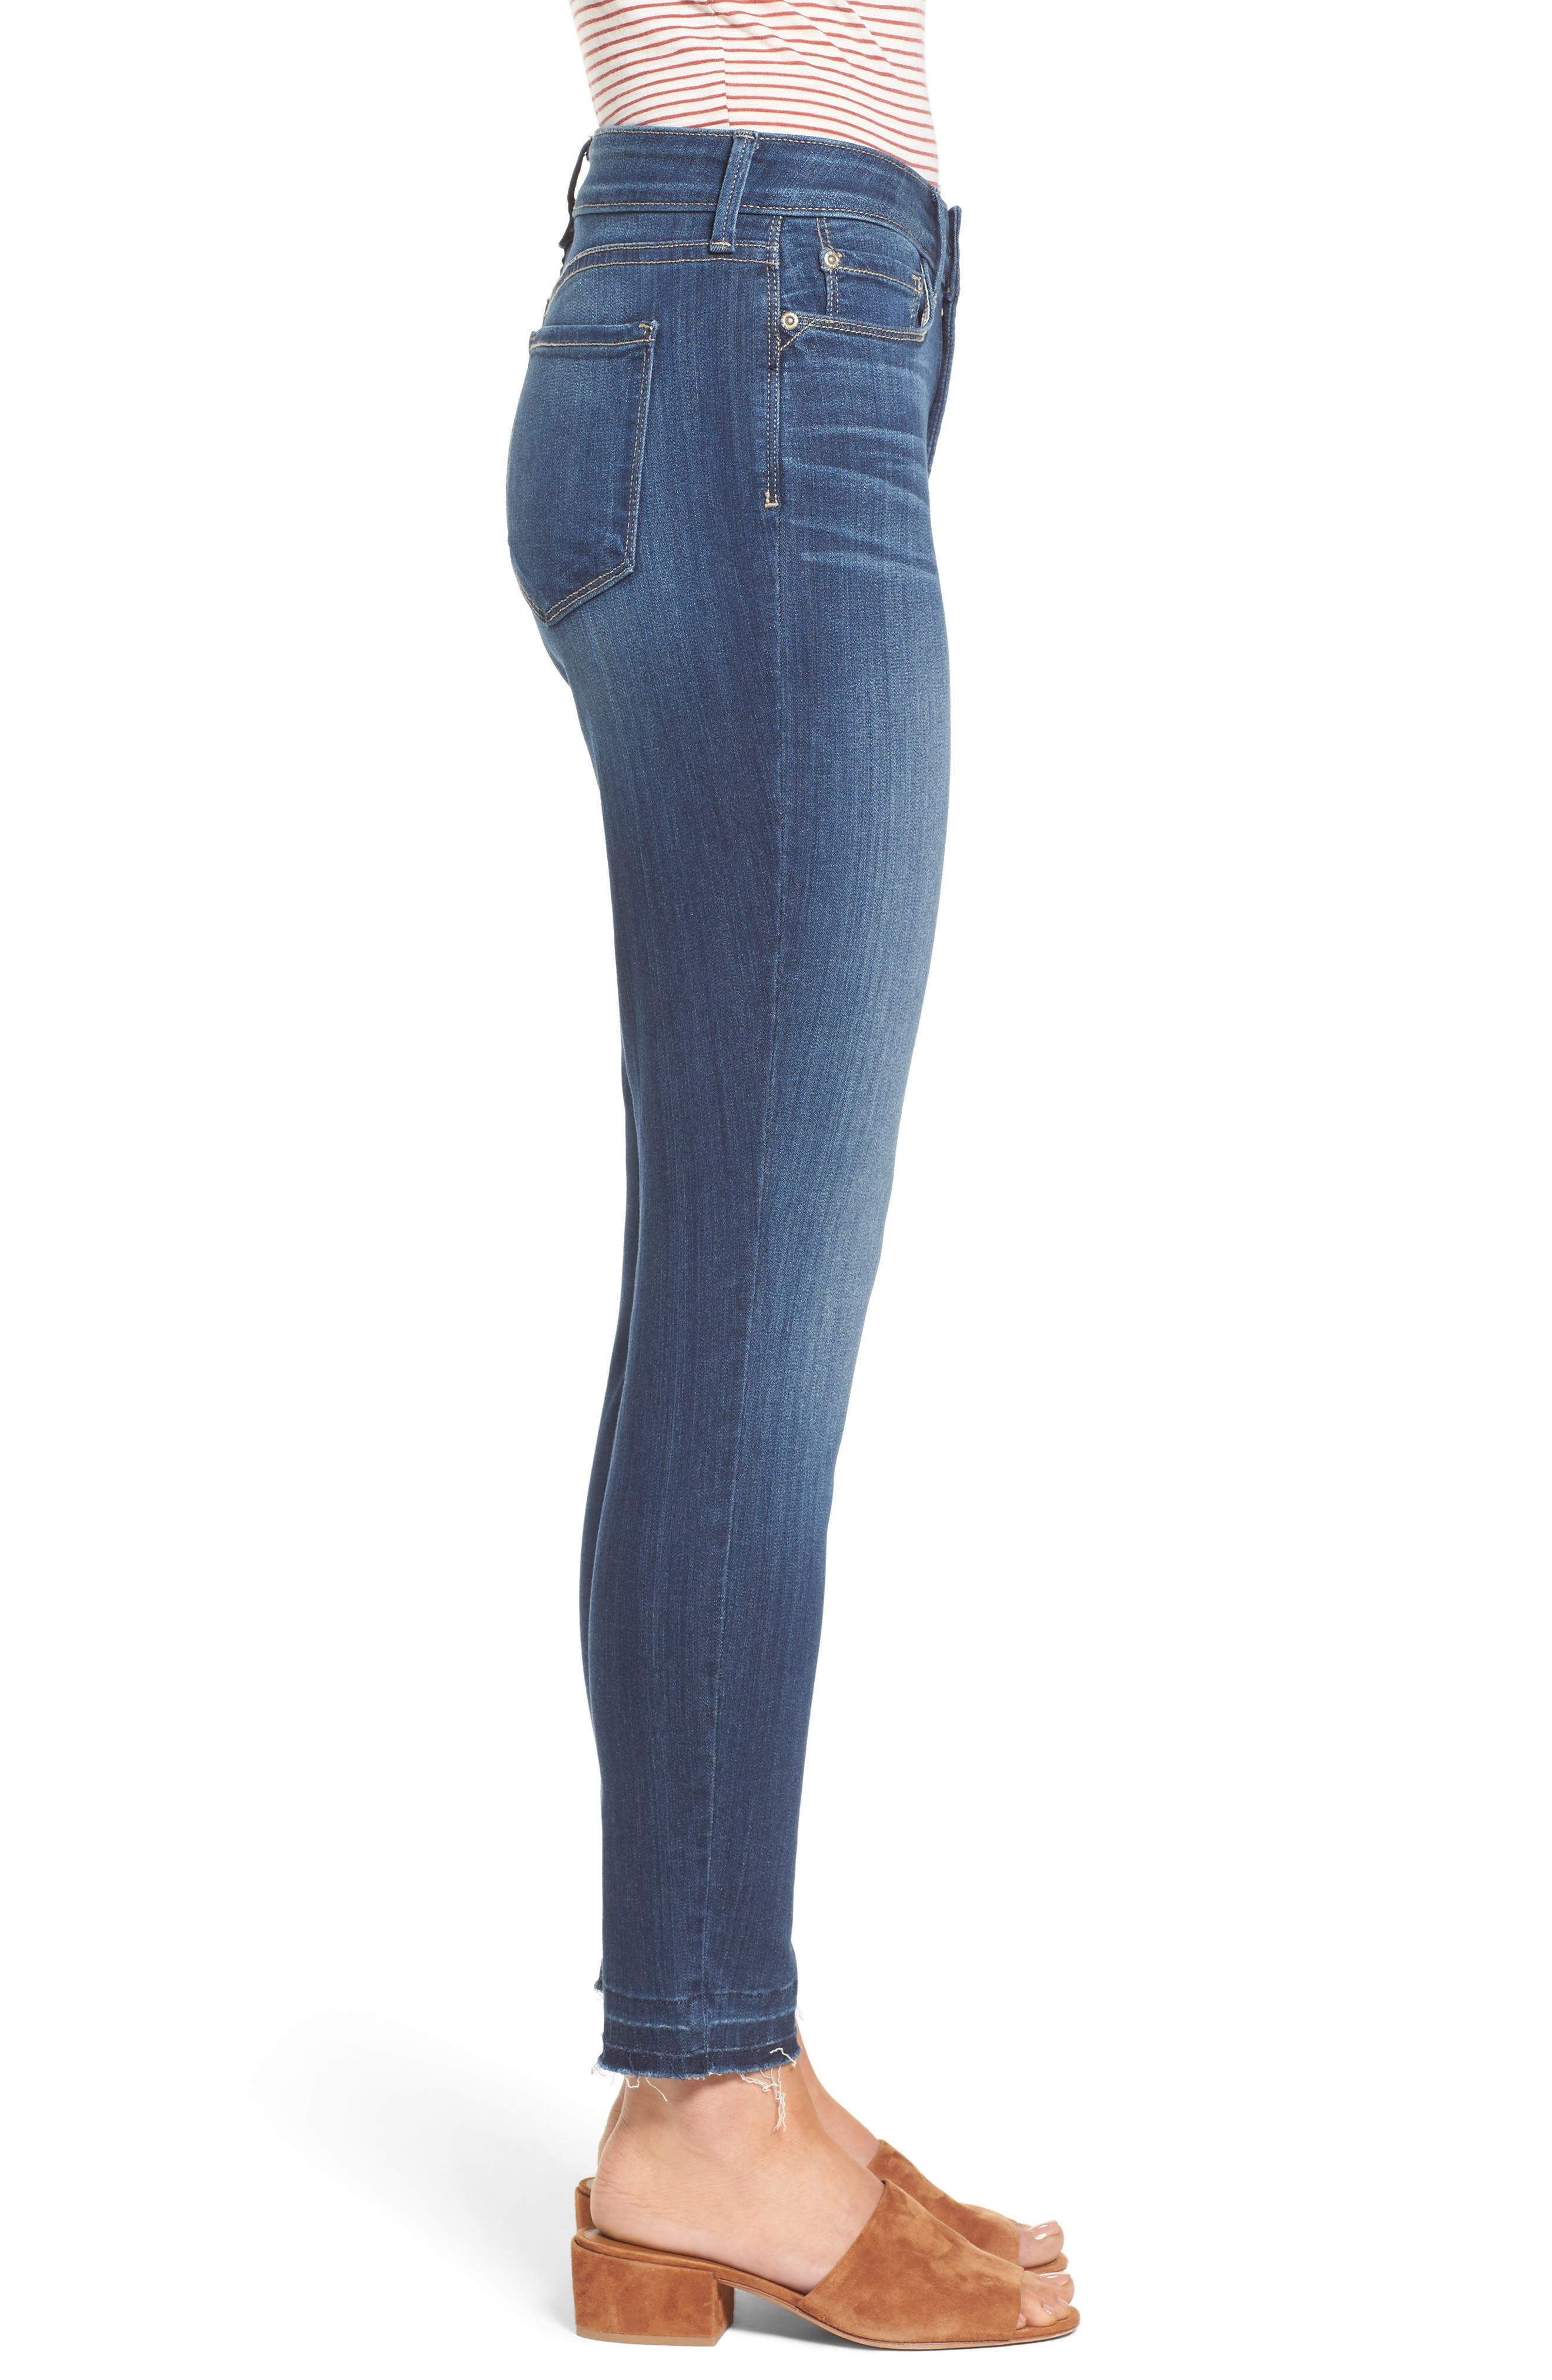 Ami Release Hem Stretch Skinny Jeans,                             Alternate thumbnail 3, color,                             Mabel